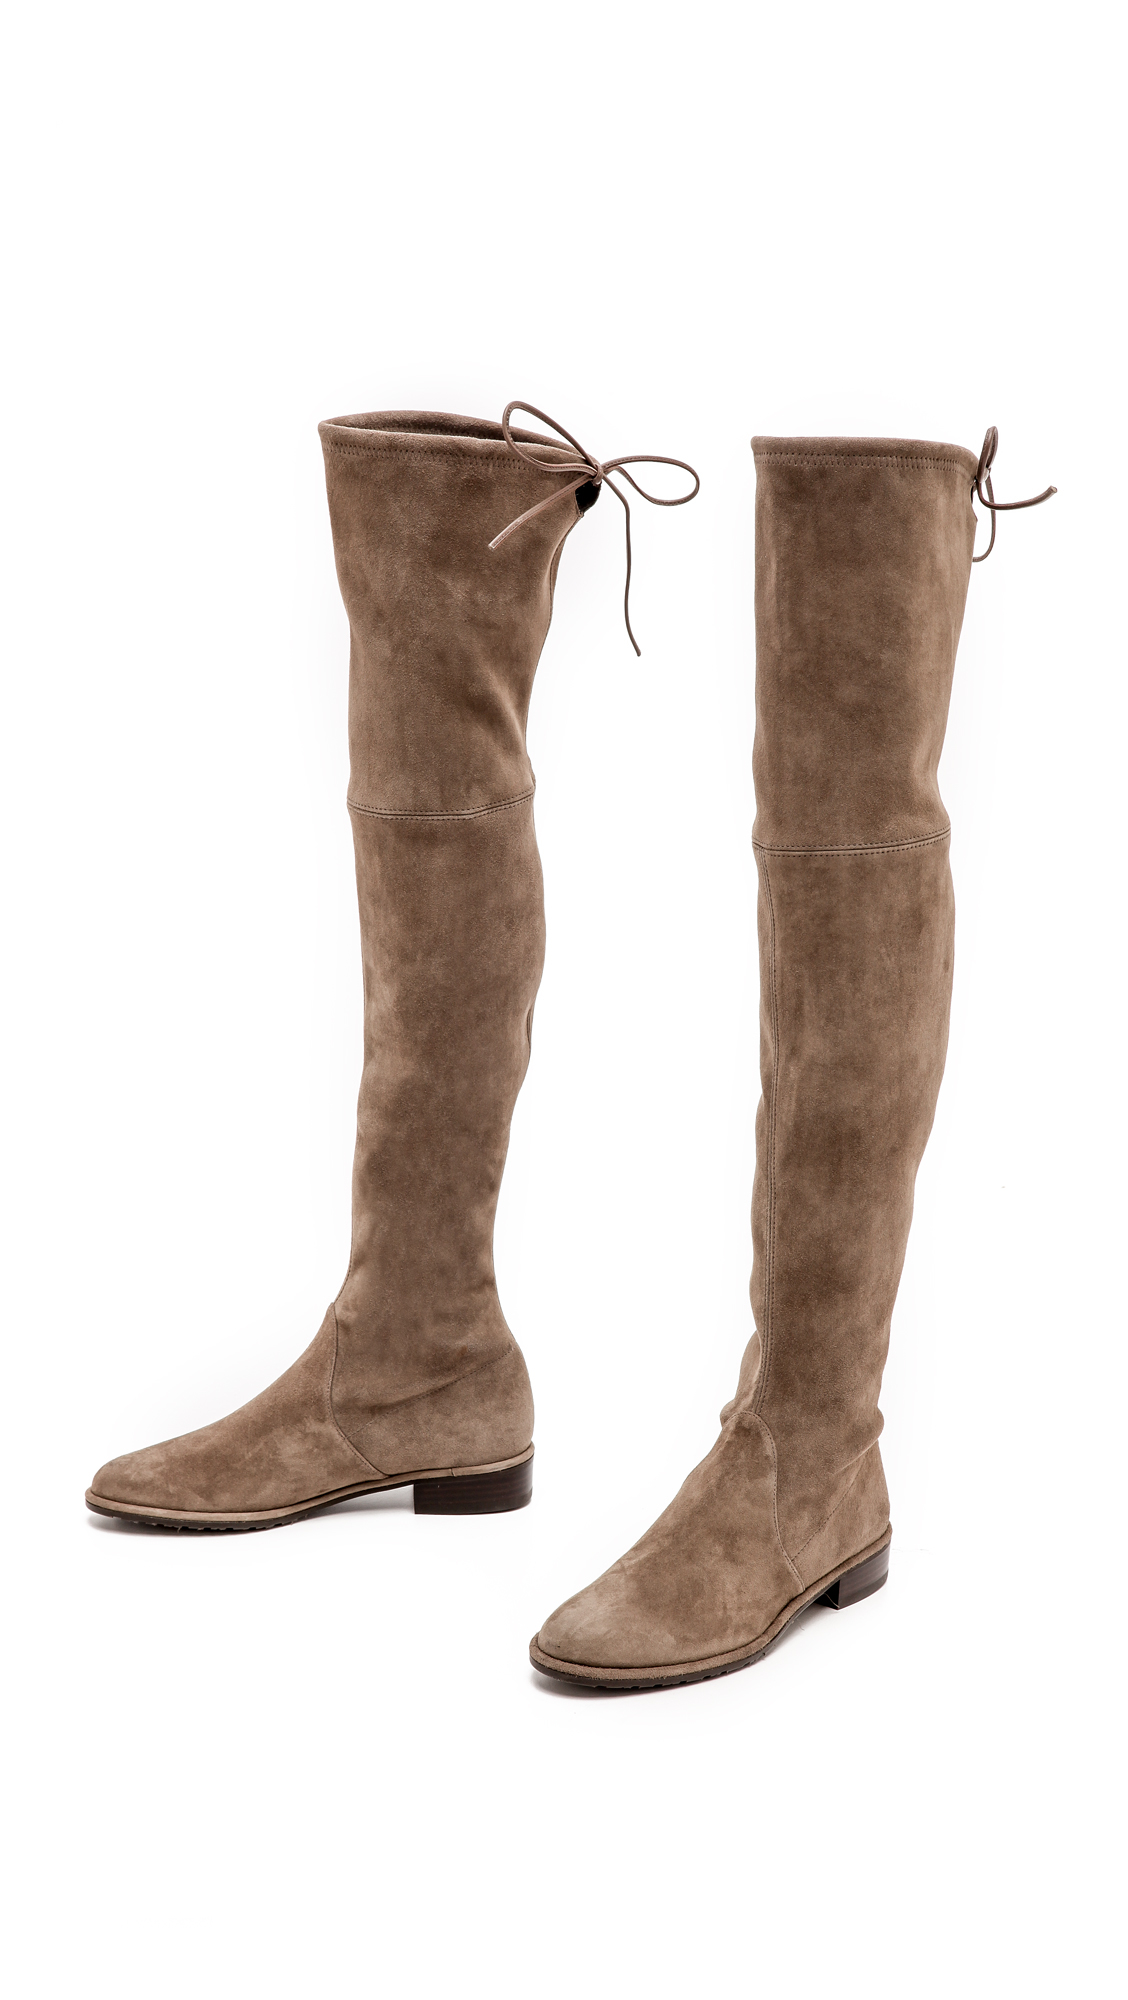 Stuart weitzman Lowland Thigh High Flat Boots - Loden in Brown | Lyst